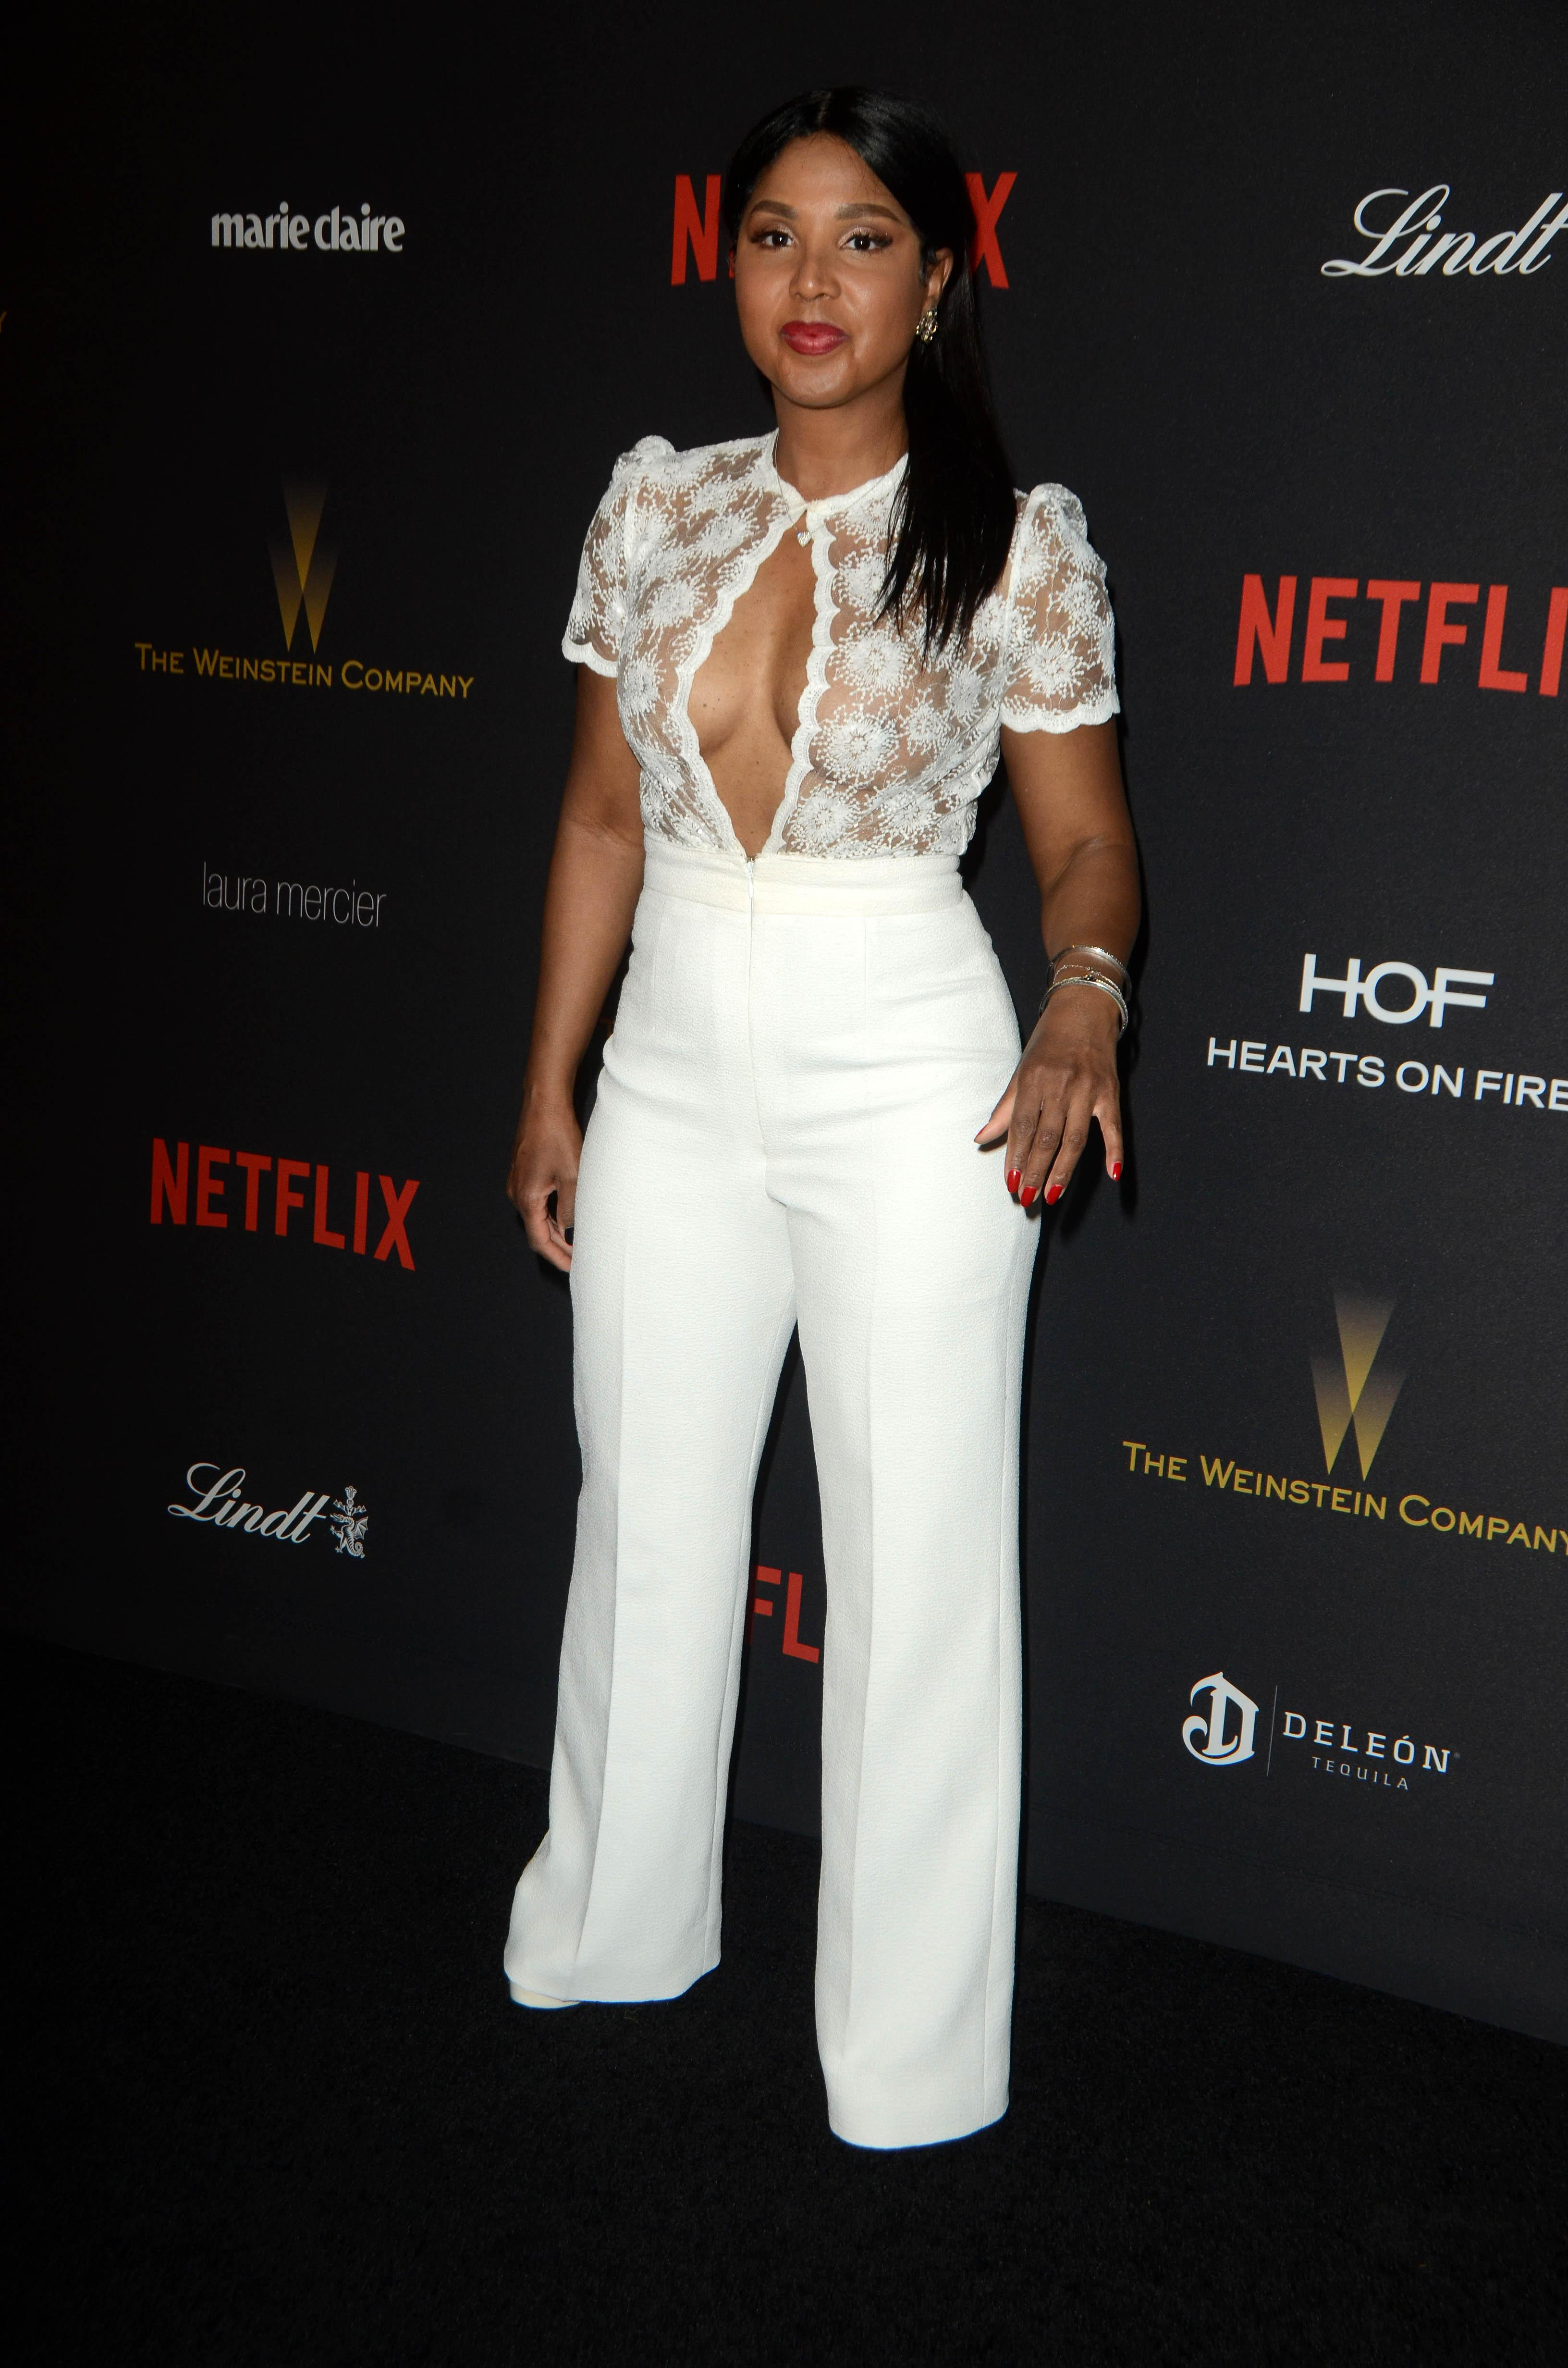 BEVERLY HILLS - JANUARY 10: Toni Braxton at The Weinstein Company & Netflix 2016 Golden Globe After Party on January 10 2016 in Beverly Hills, California. (Photos by Steve Buckley/BuzzFoto.com) Buzz Foto LLC http://www.buzzfoto.com 1112 Montana Ave. Suite 80 Santa Monica, CA 90405 1 310 441 4464 1 310 980 8822 1 310 691 3888 *** Local Caption *** Toni Braxton